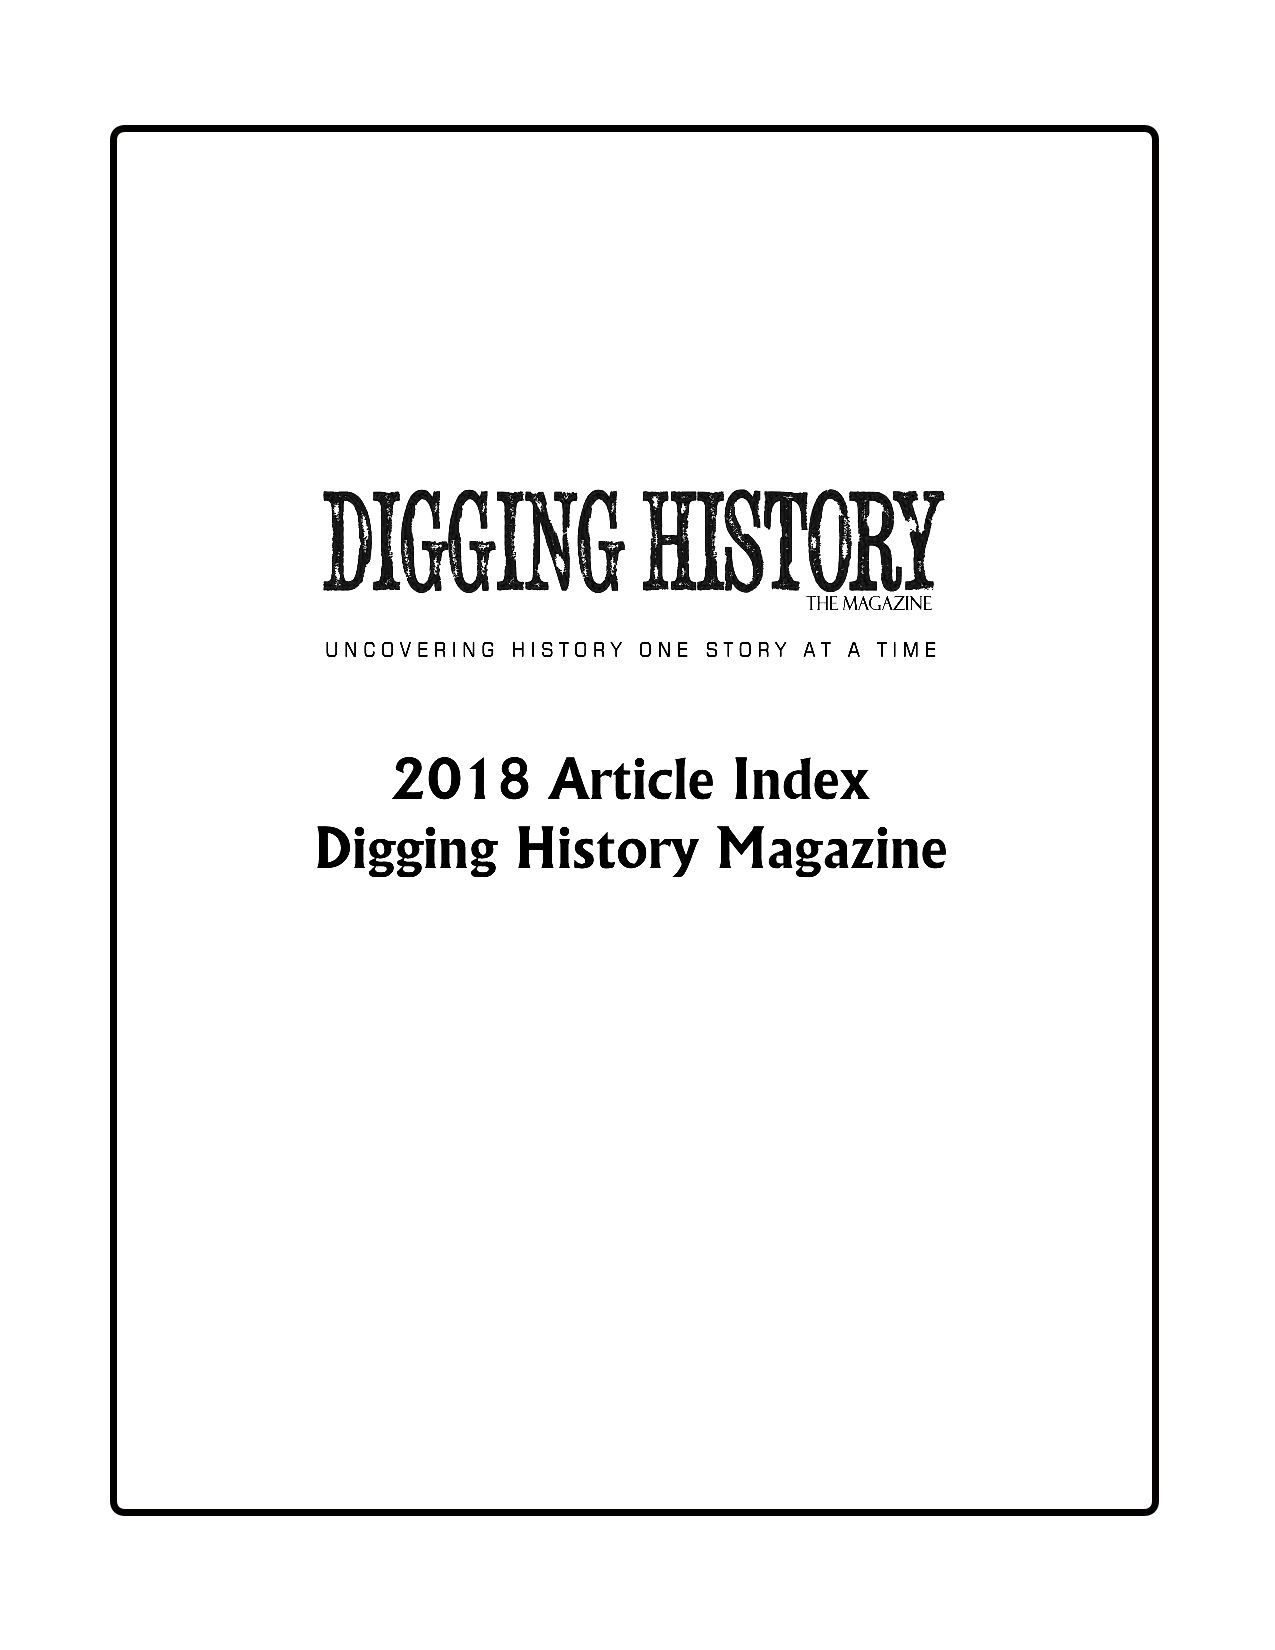 2018 Digging History Magazine Article Index